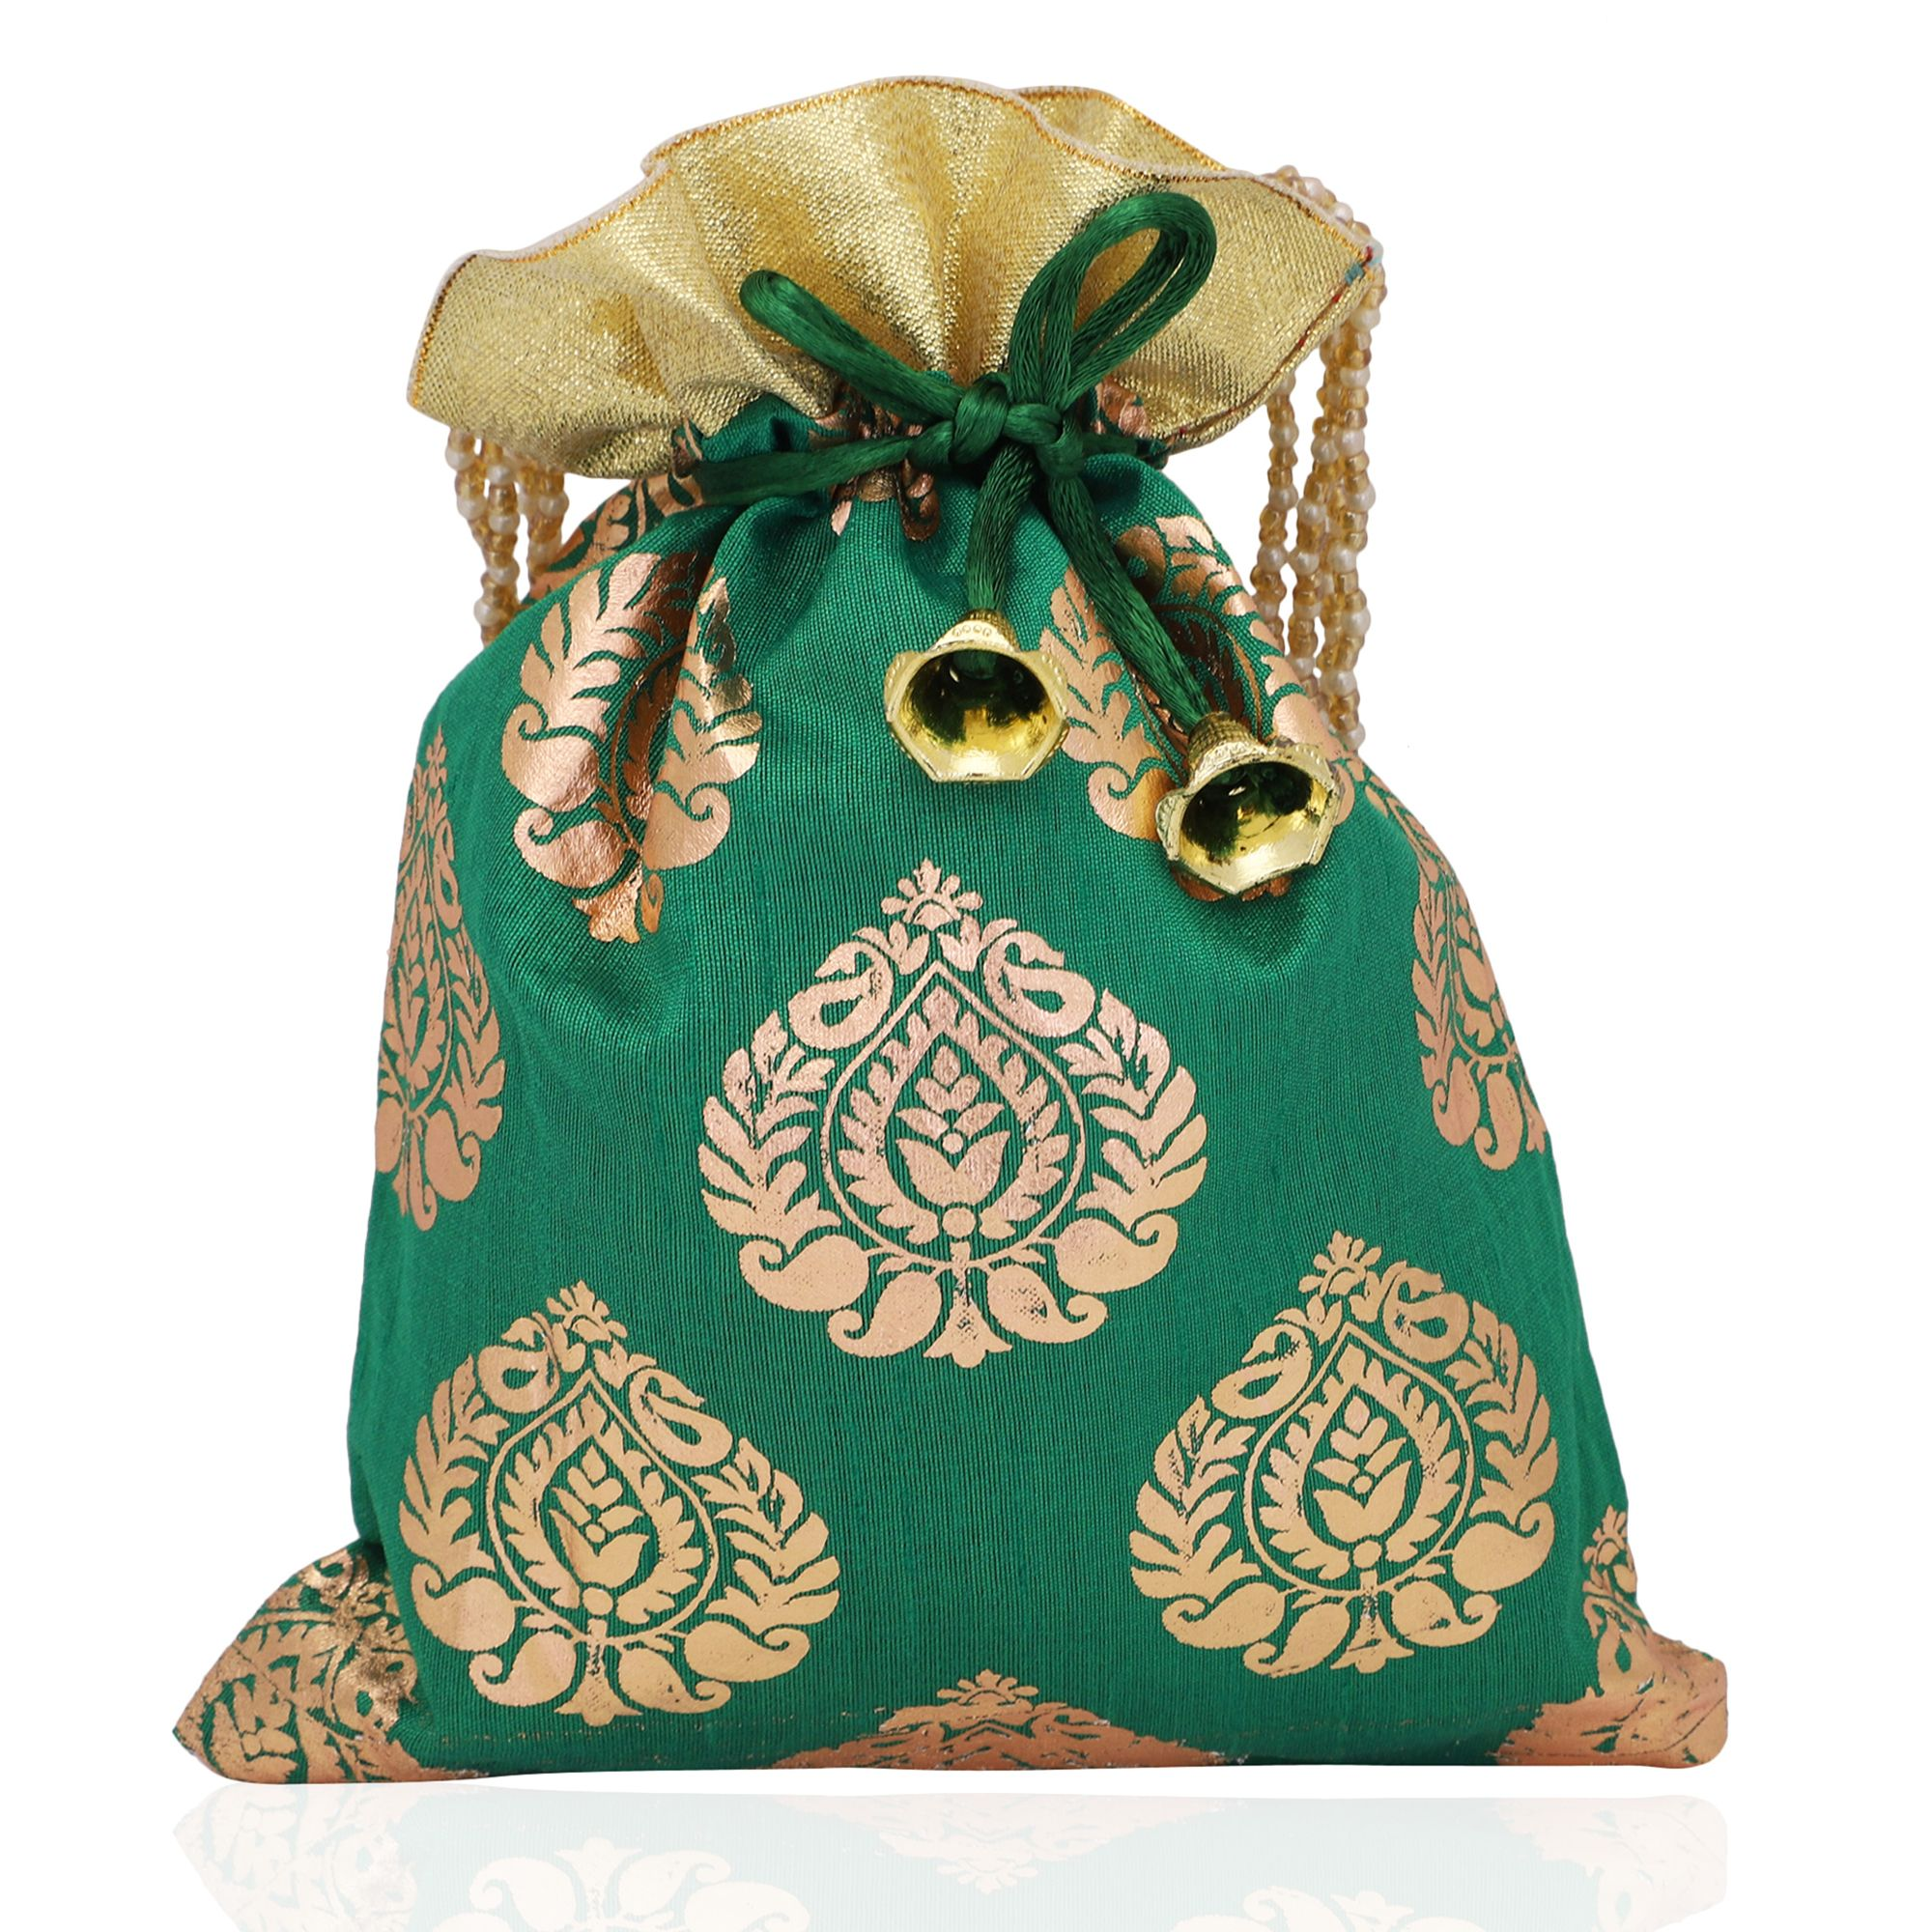 Foil Print Dupion Silk Potli Bag in Green